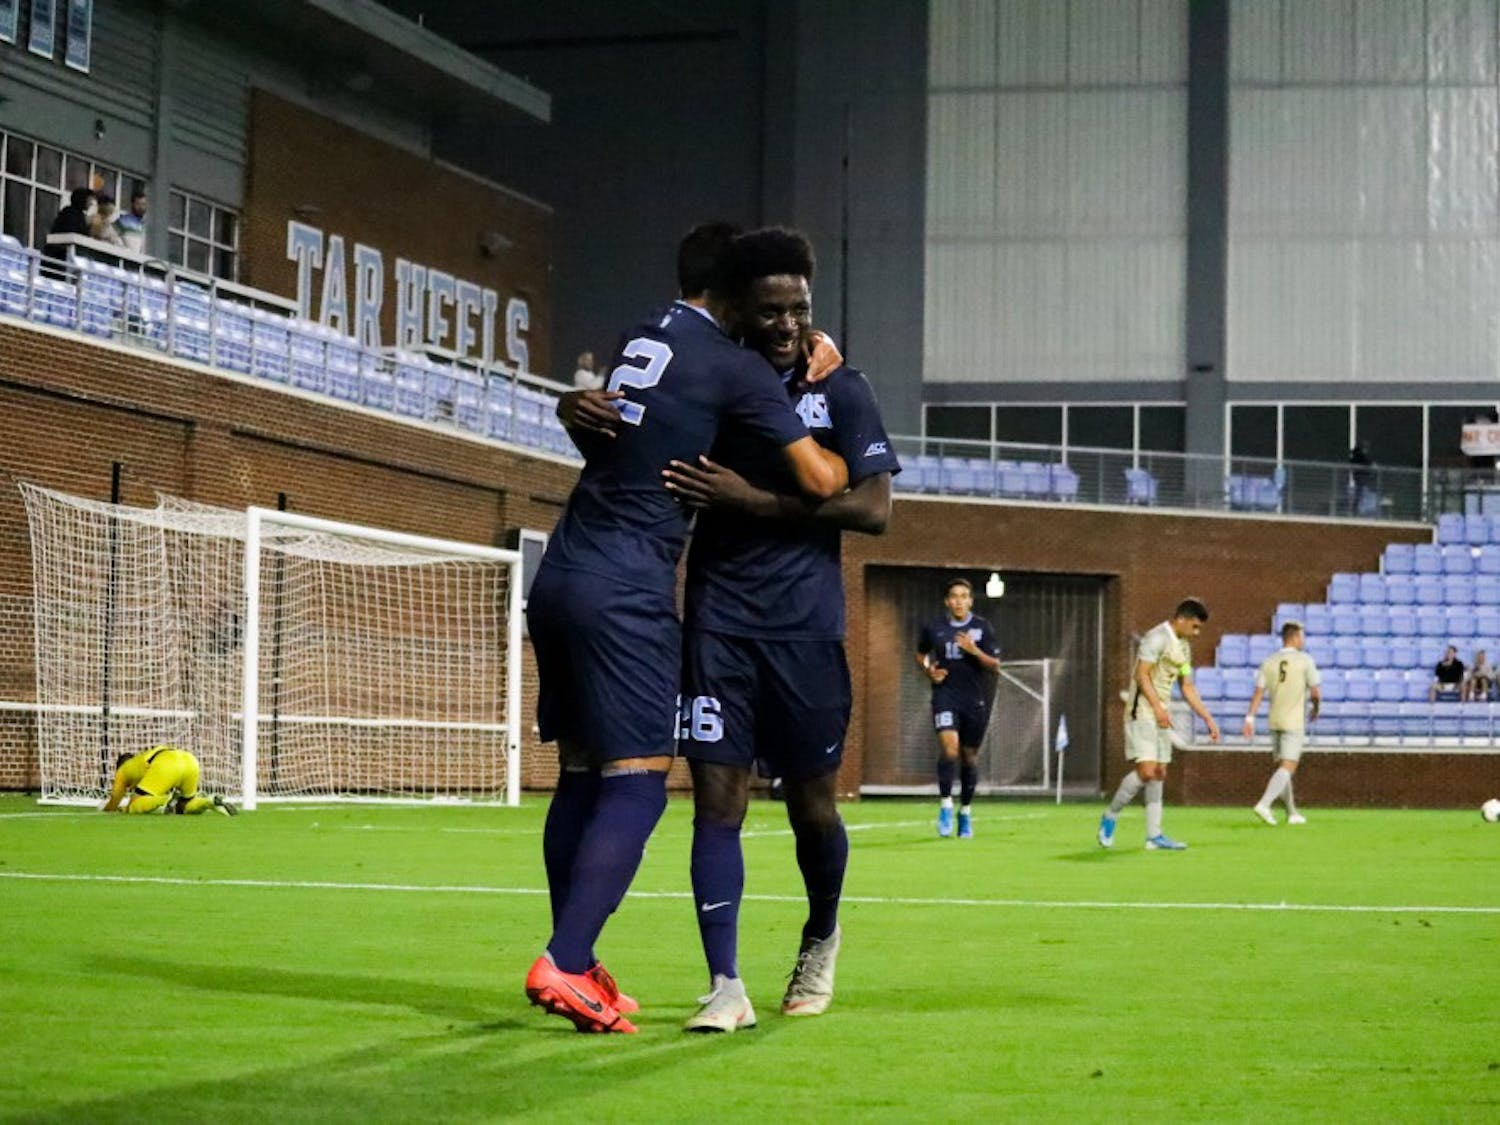 Senior midfielder Mauricio Pineda (2) celebrates his second goal in the first half with senior forward Jelani Peters (26). Pineda scored the first two goals in the Tar Heels 3-1 win over West Virginia on Tuesday, Oct. 8, 2019.